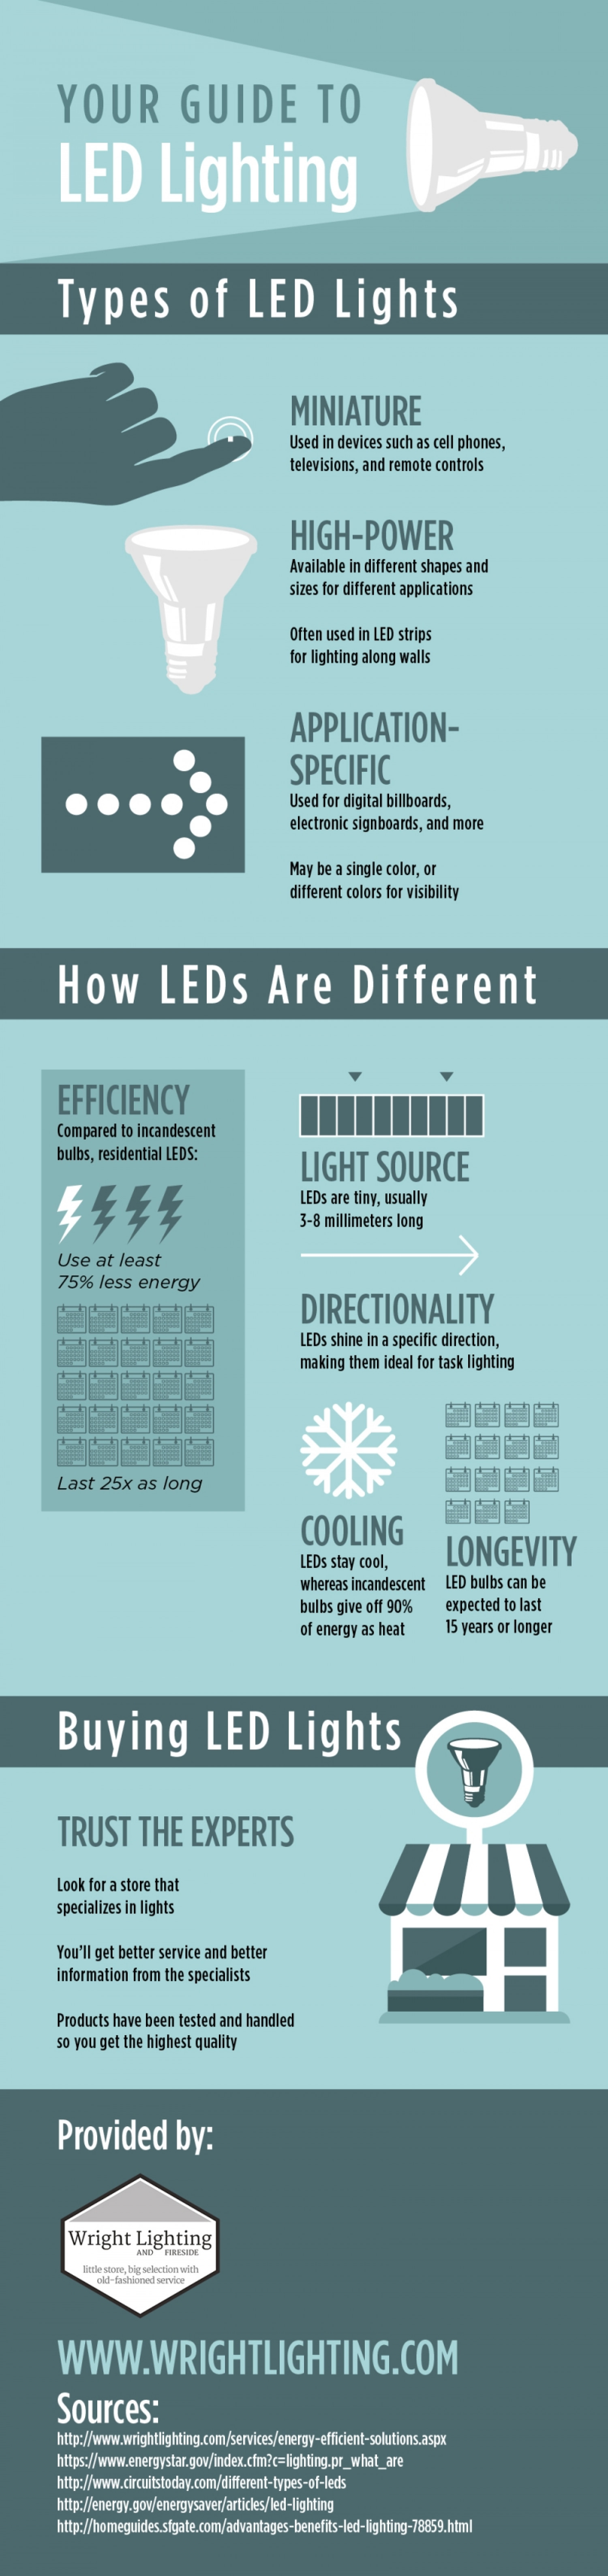 Your Guide to LED Lighting   Infographic